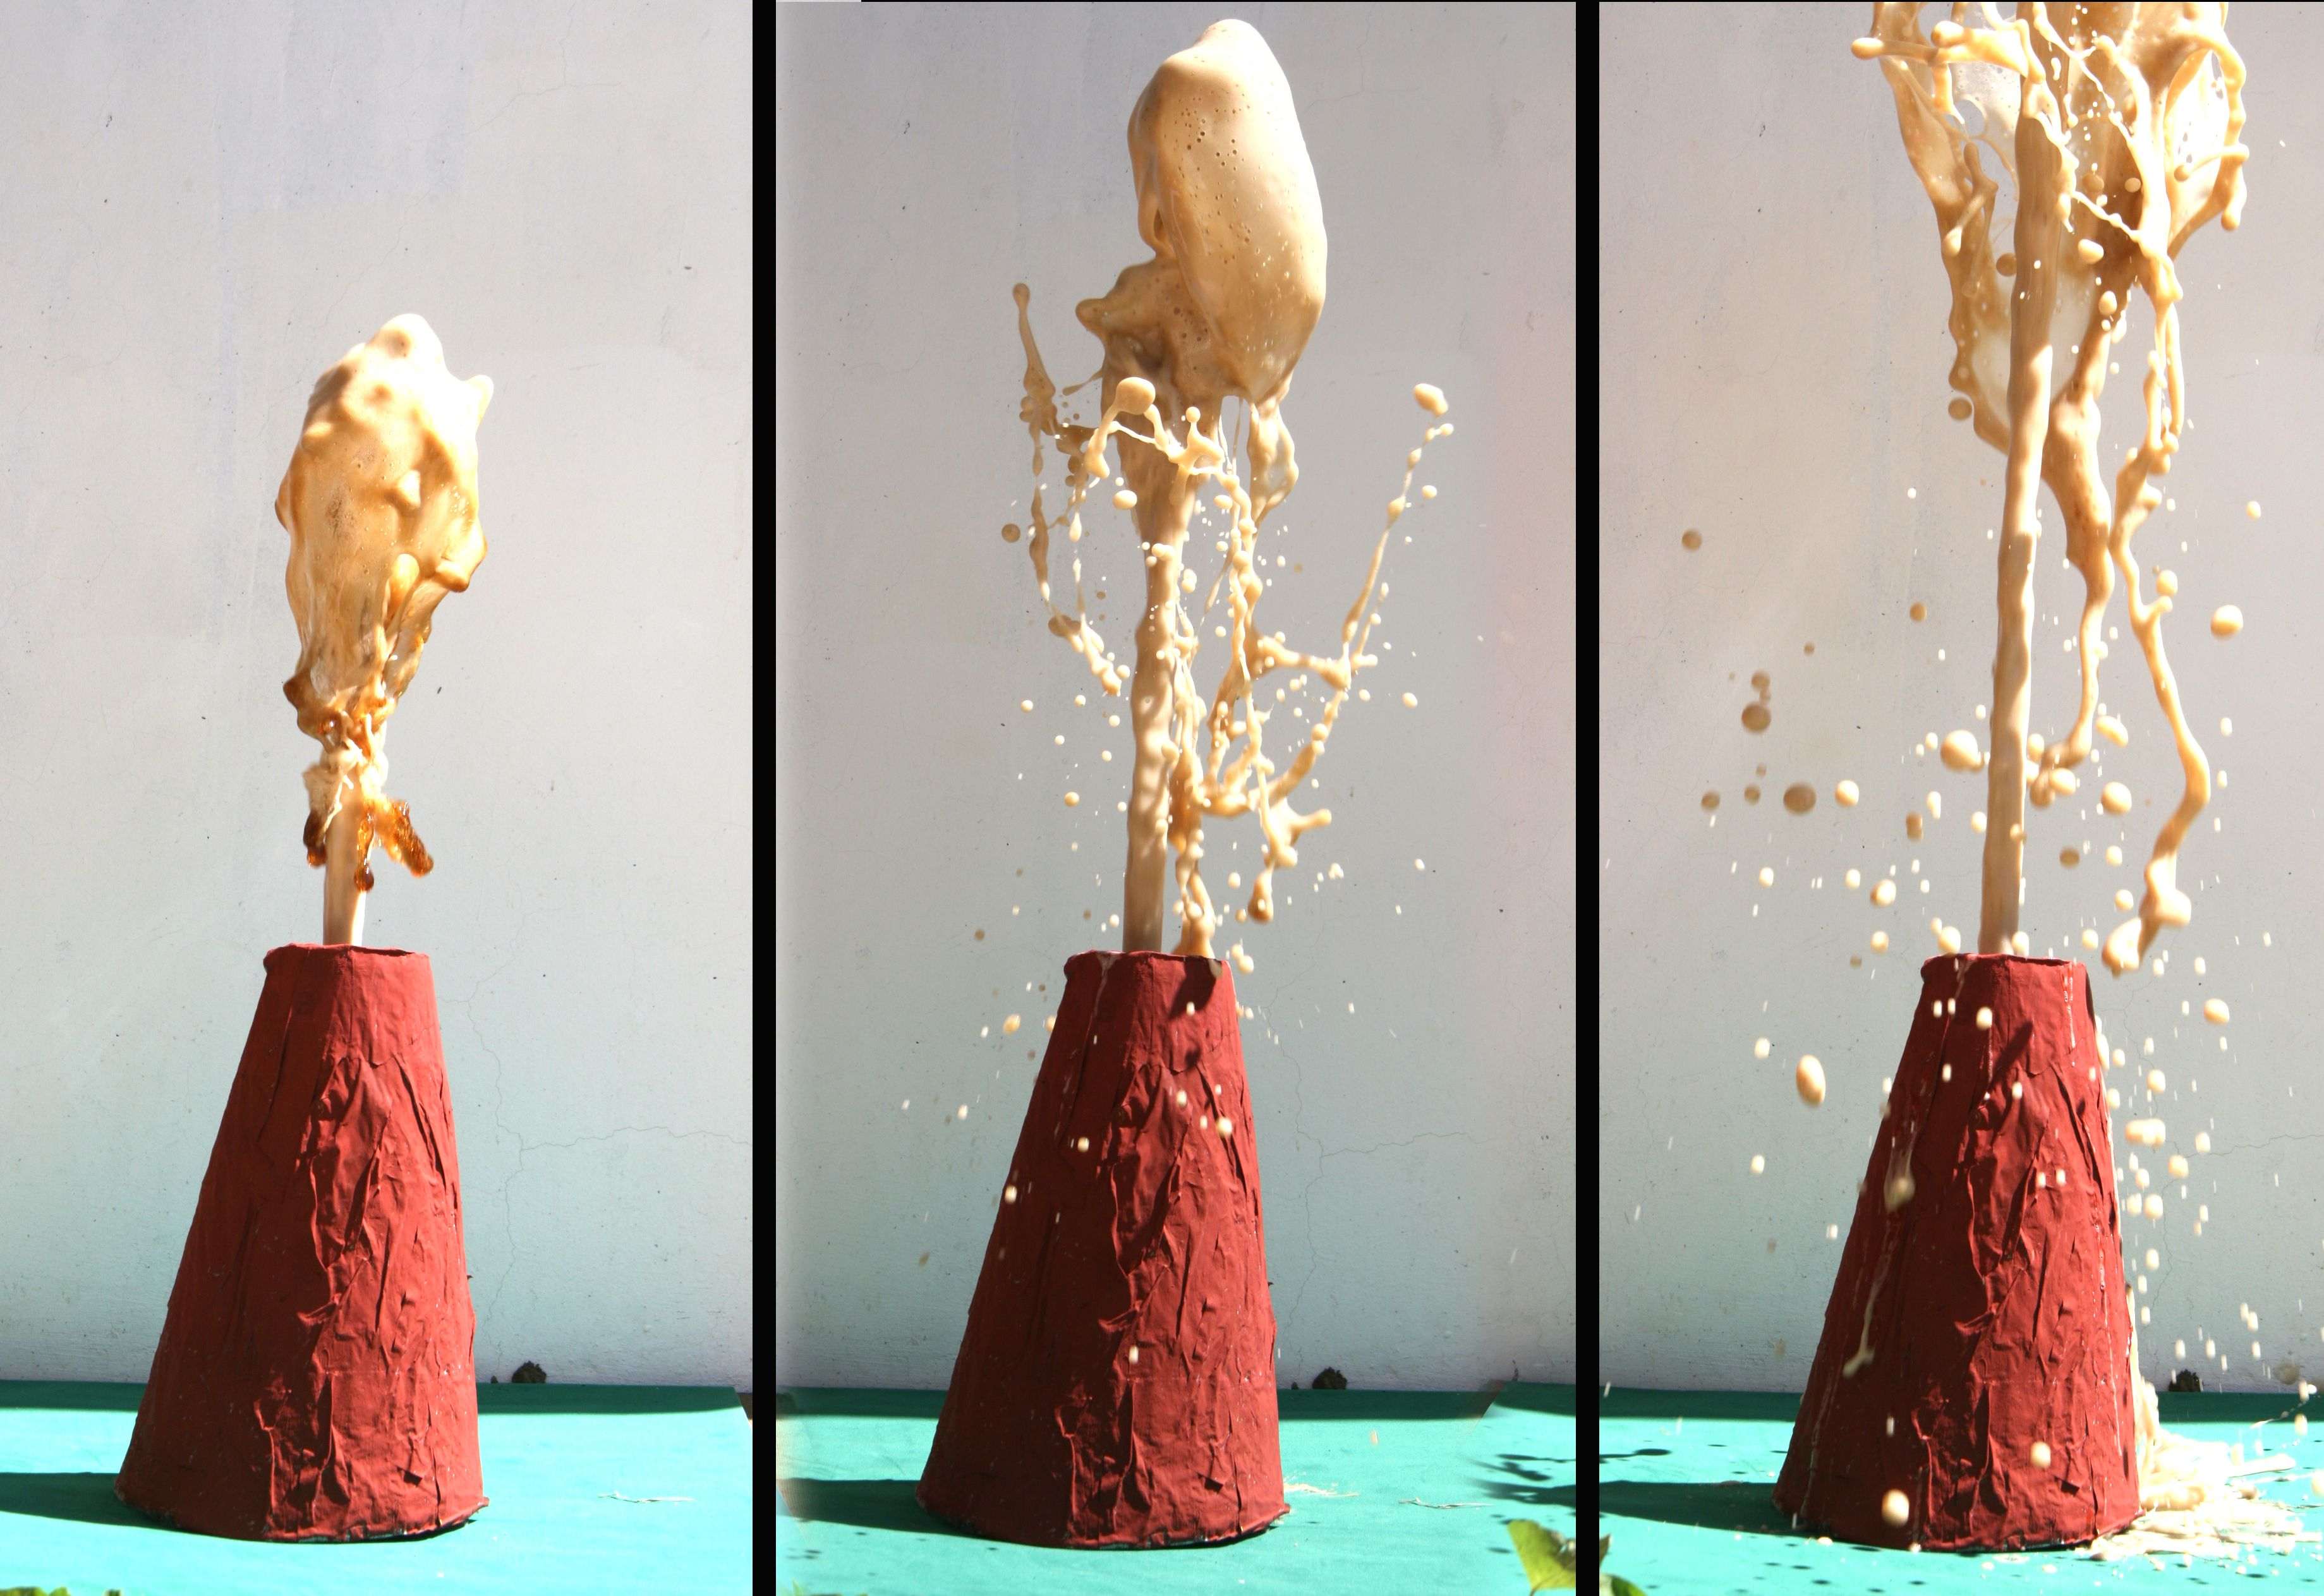 How to Make a Soda Bottle Volcano